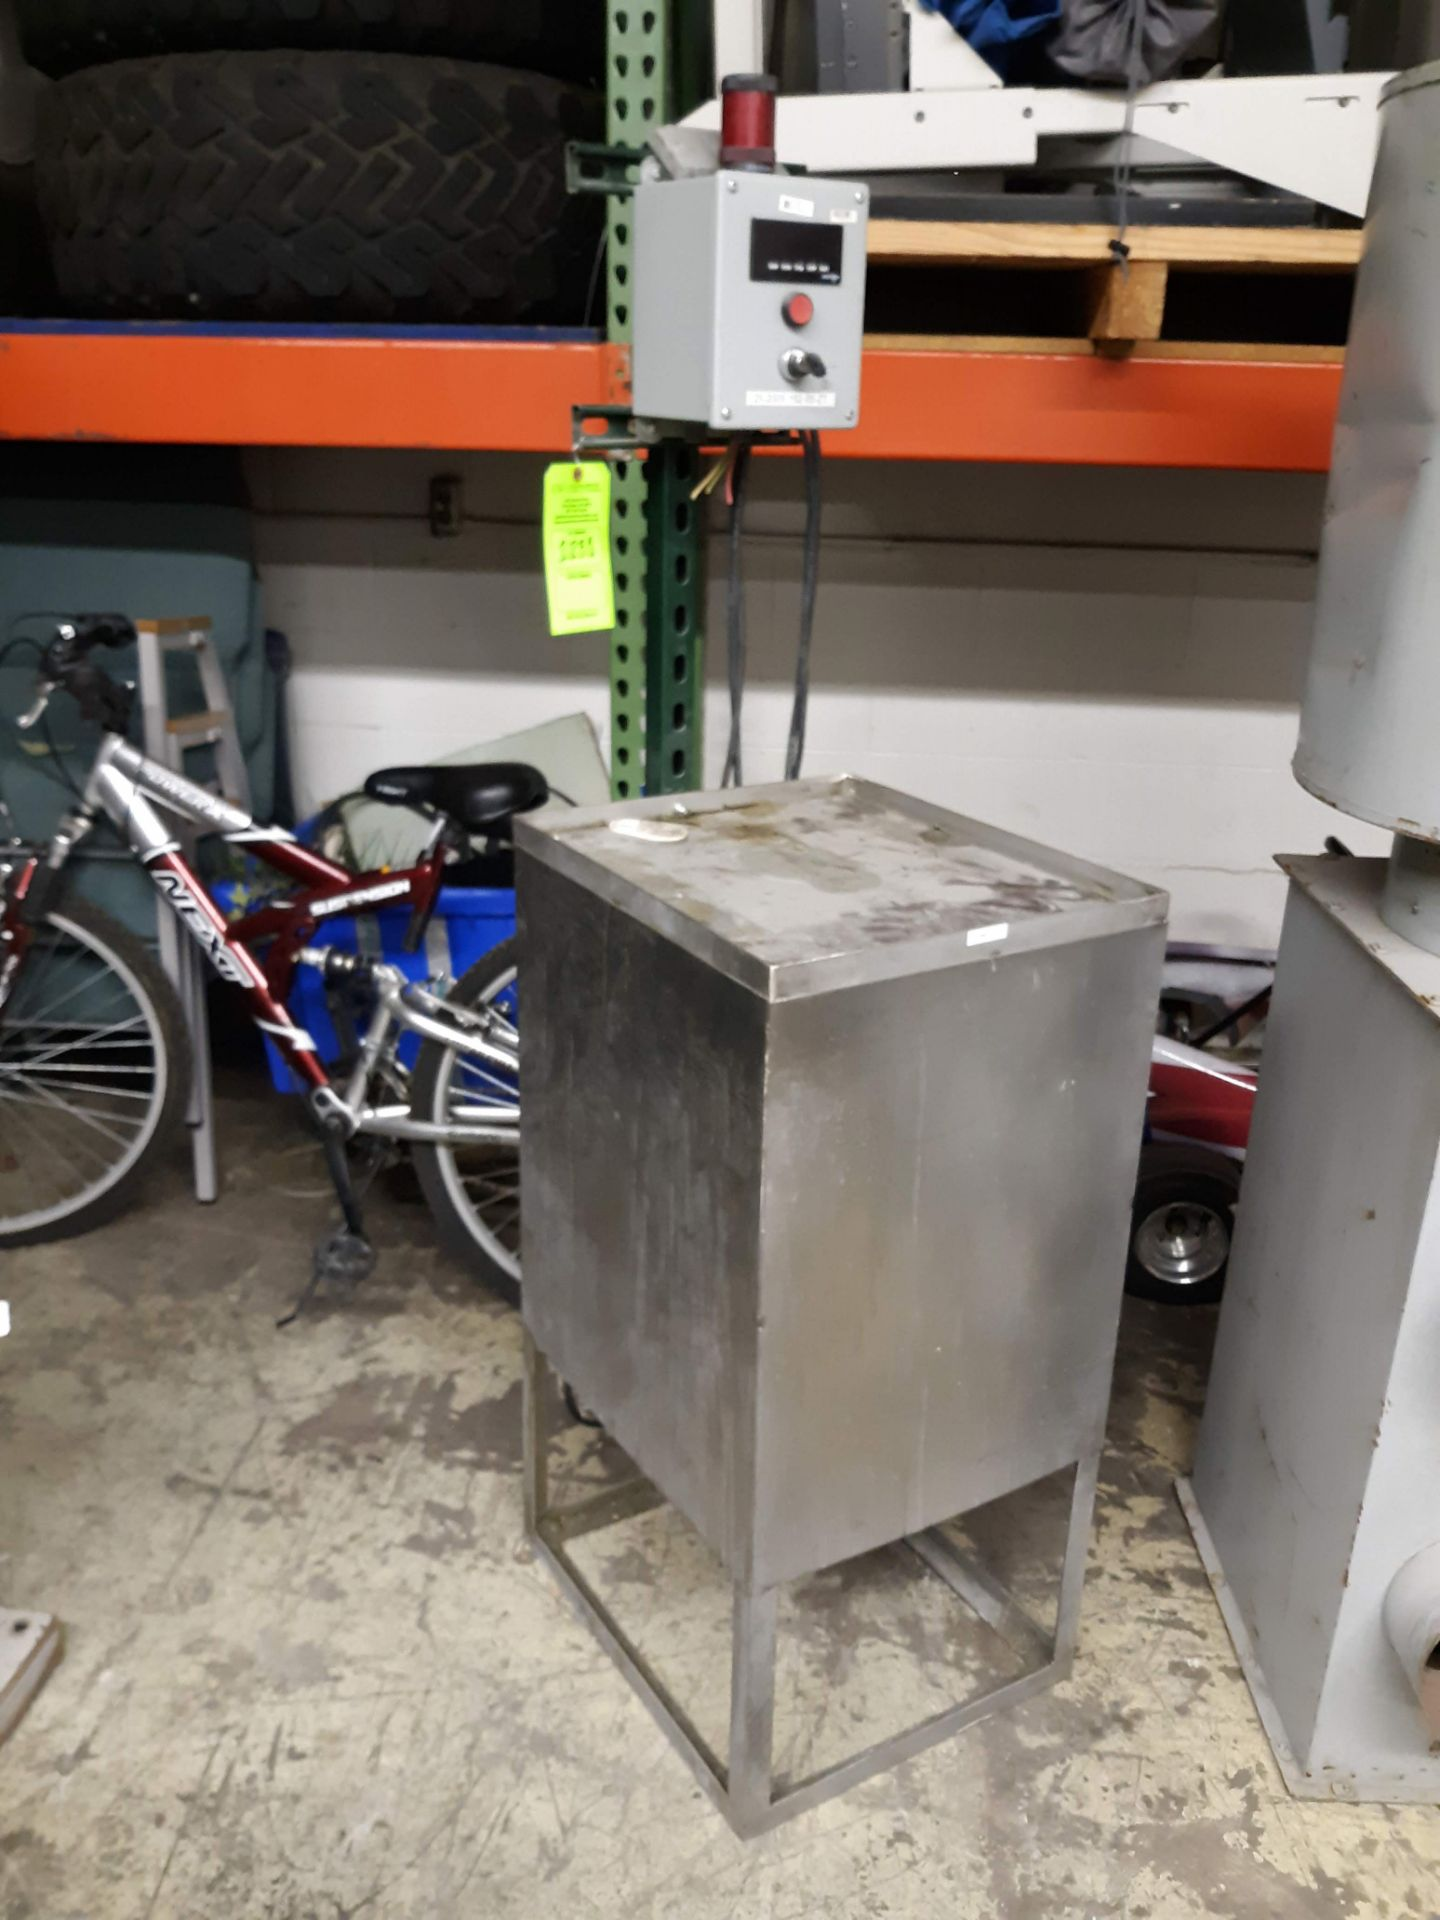 Lot 1231 - STAINLESS STEEL STAND W/ RED LION CONTROL BOX; POWER OUTLET BOX; SQUARE D GEN PURPOSE TRANSFORMER